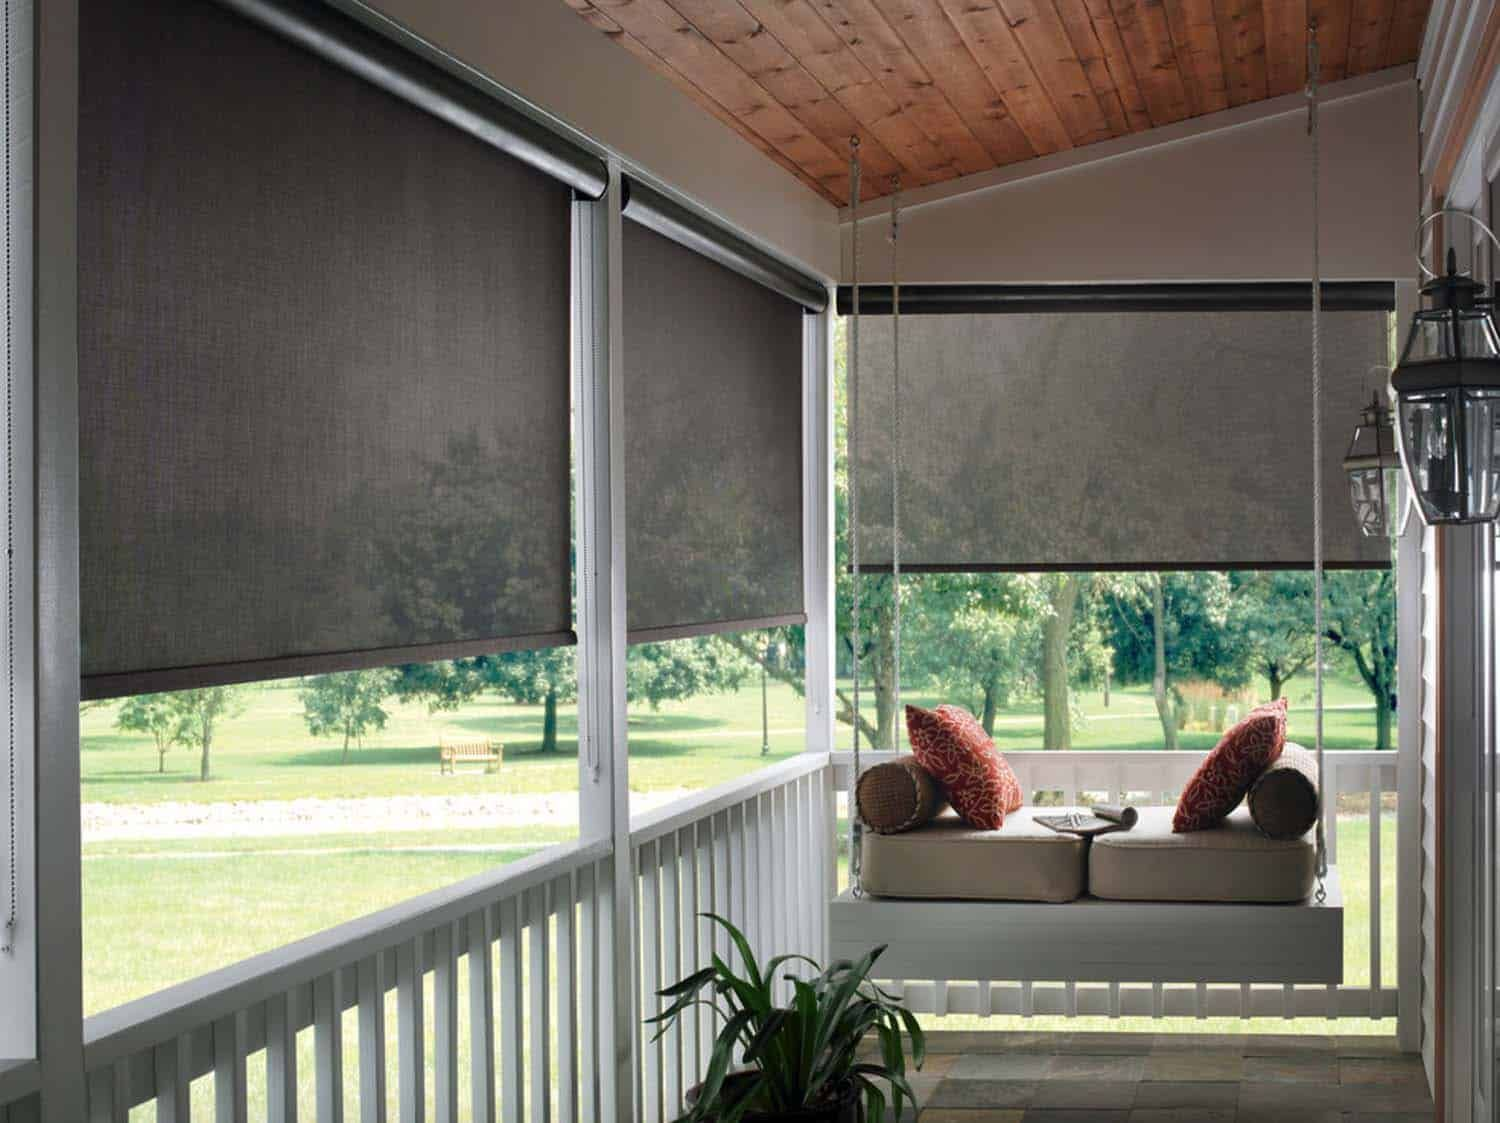 30 Delightful And Intimate Three Season Screened Porch Ideas Porch Shades Patio Blinds Blinds Design